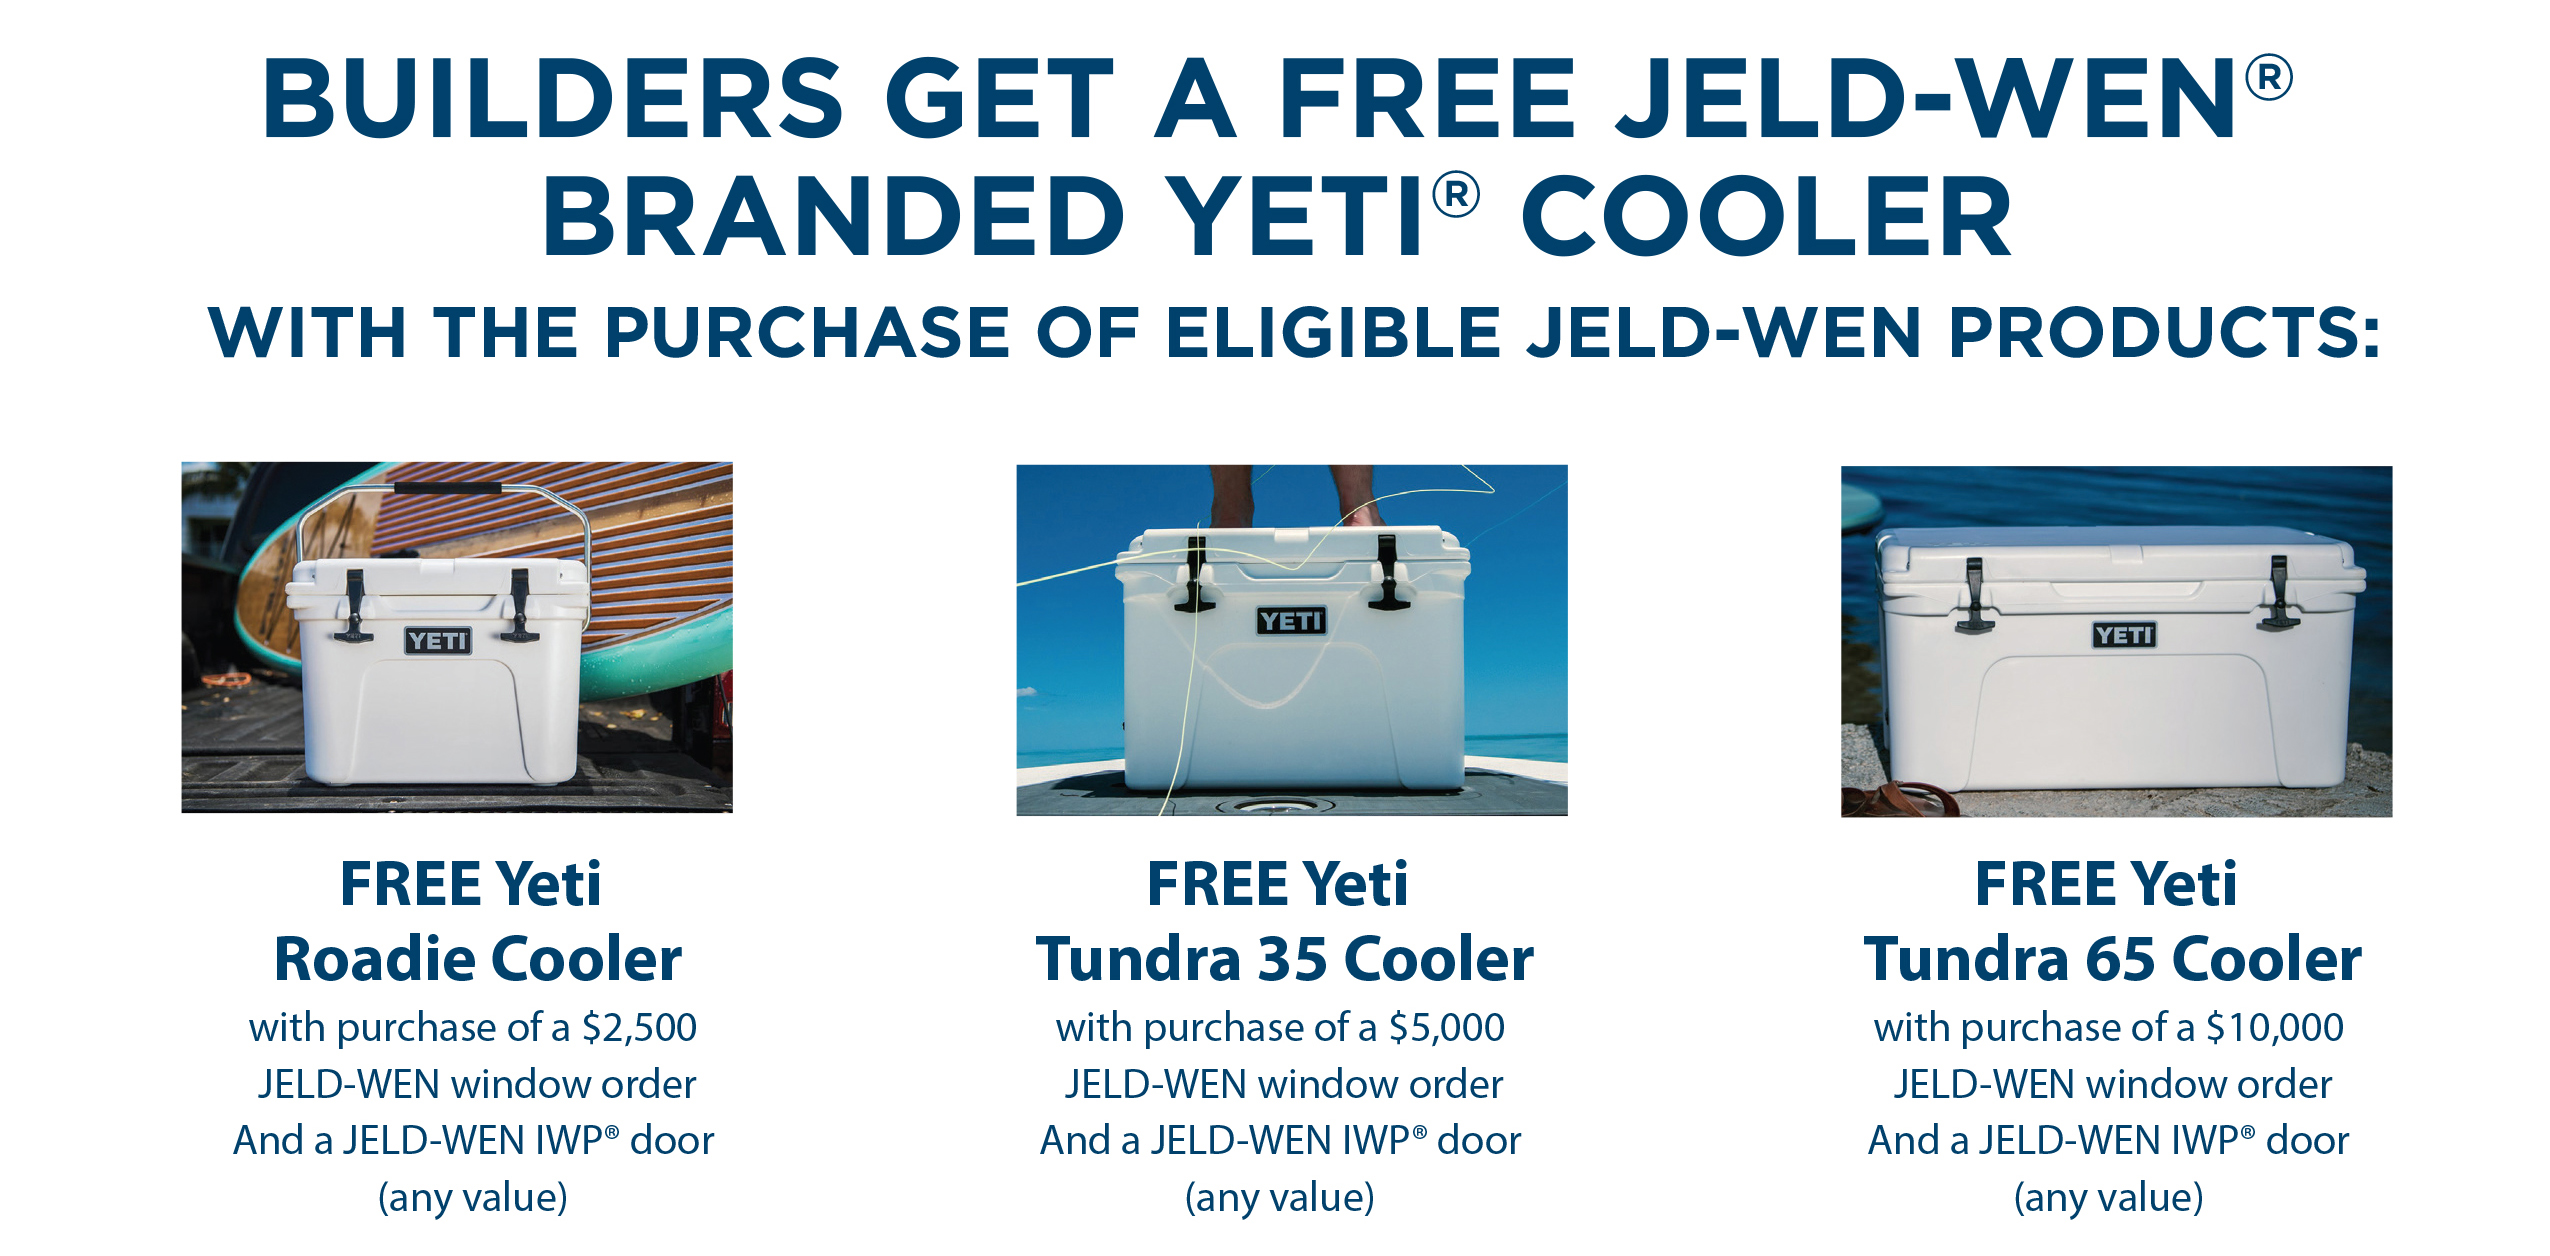 Earn a free YETI cooler from JELD-WEN